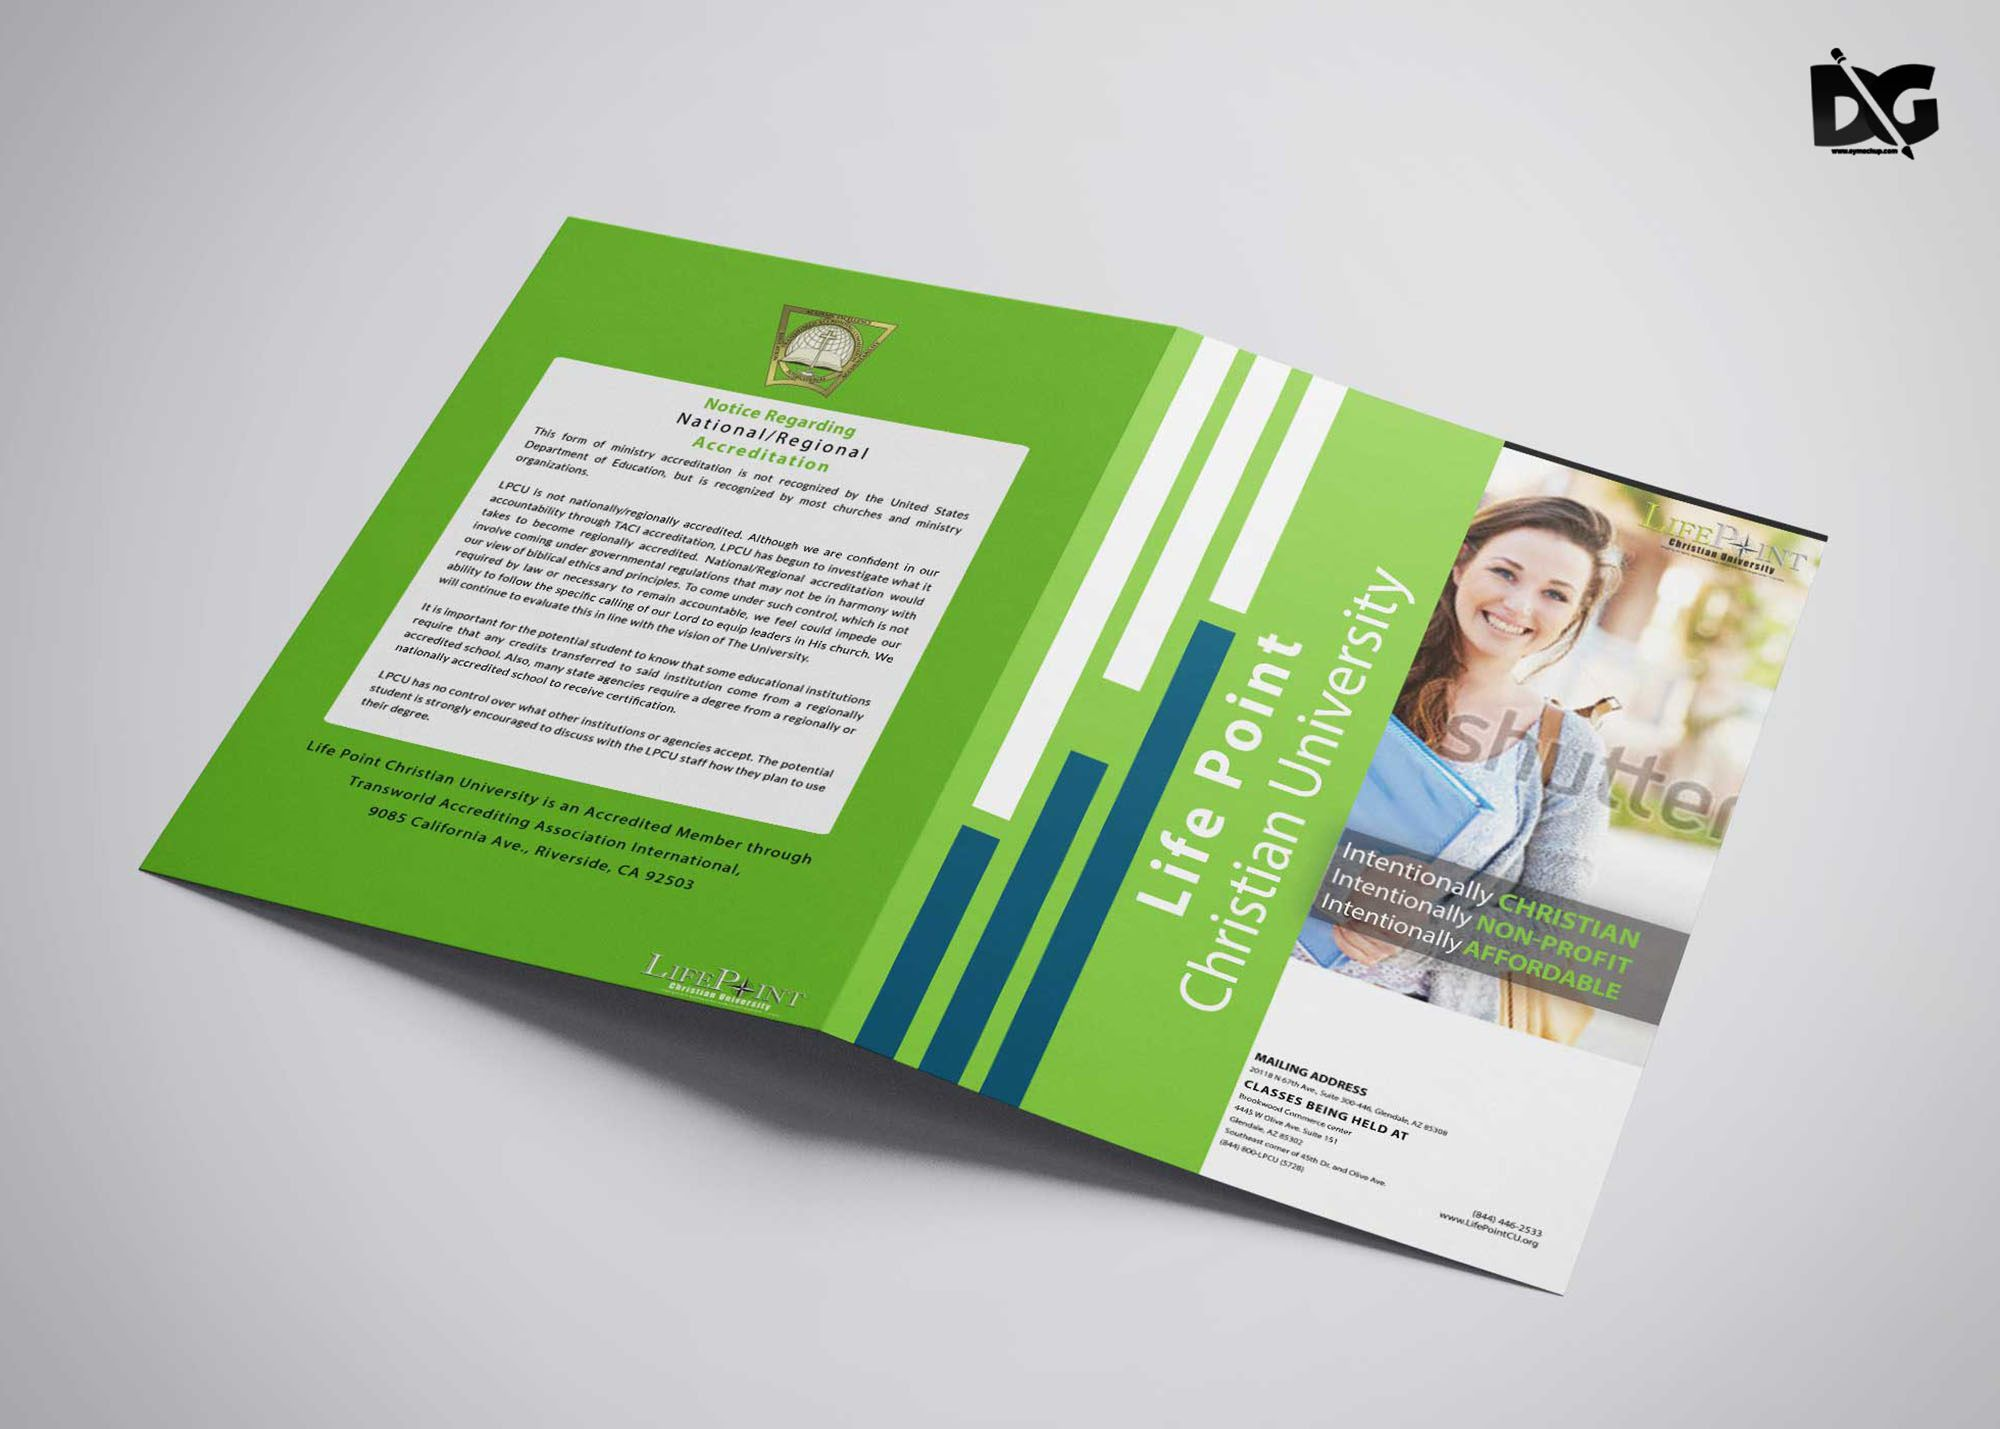 007 Unbelievable Brochure Template Free Download Photo  Microsoft Publisher Corporate Psd For Adobe IllustratorFull